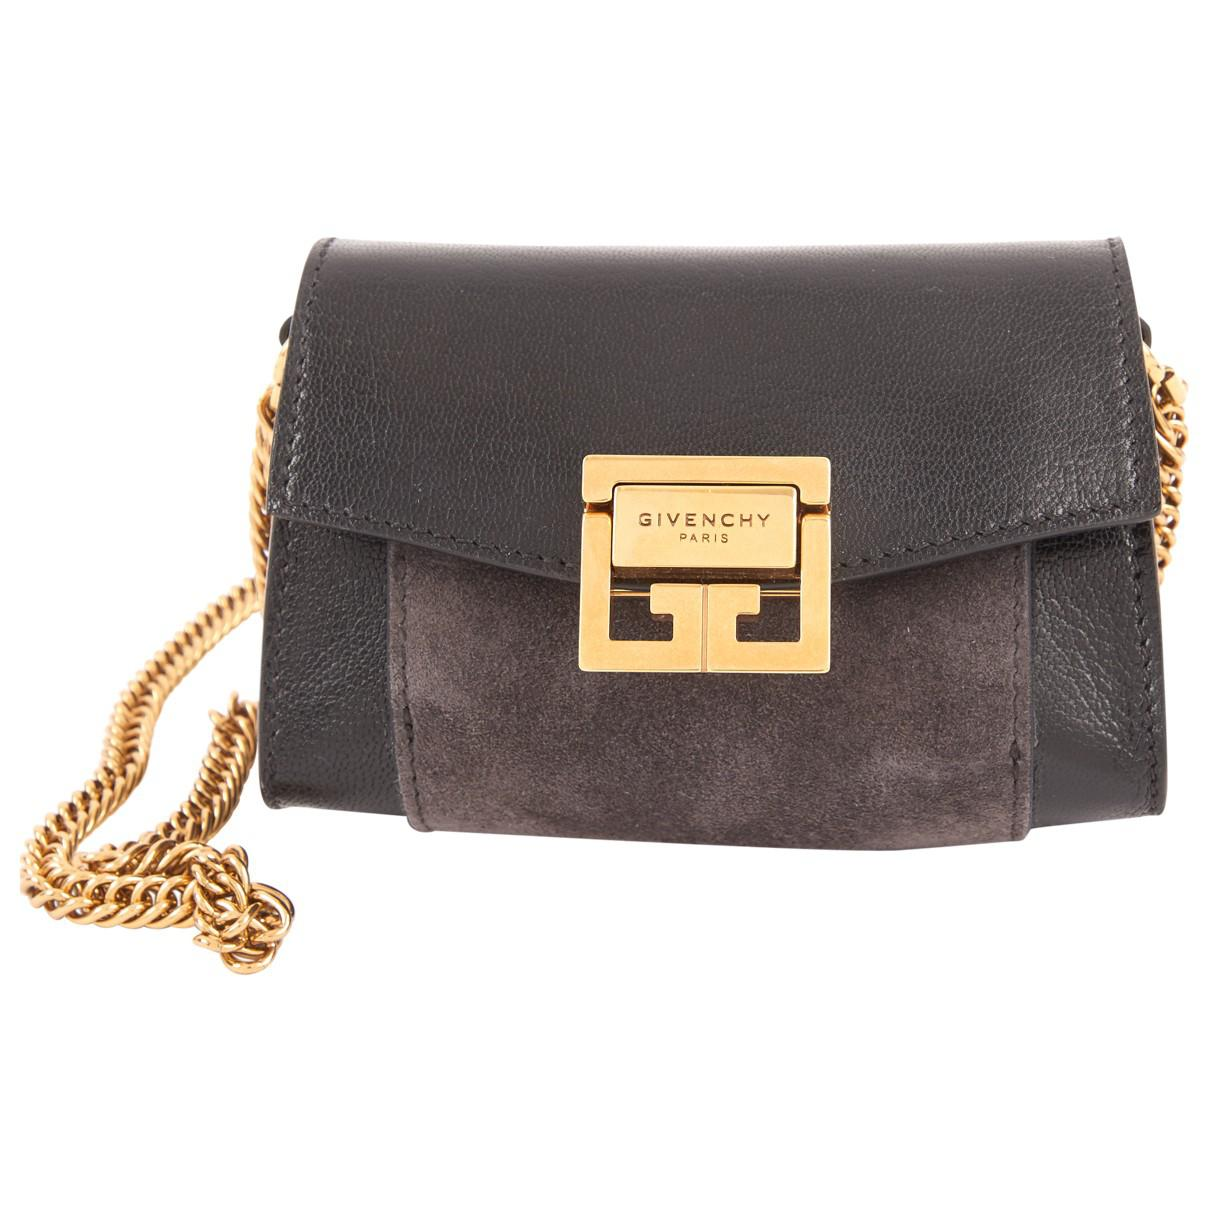 Givenchy Pre-owned - Leather clutch oDEXe